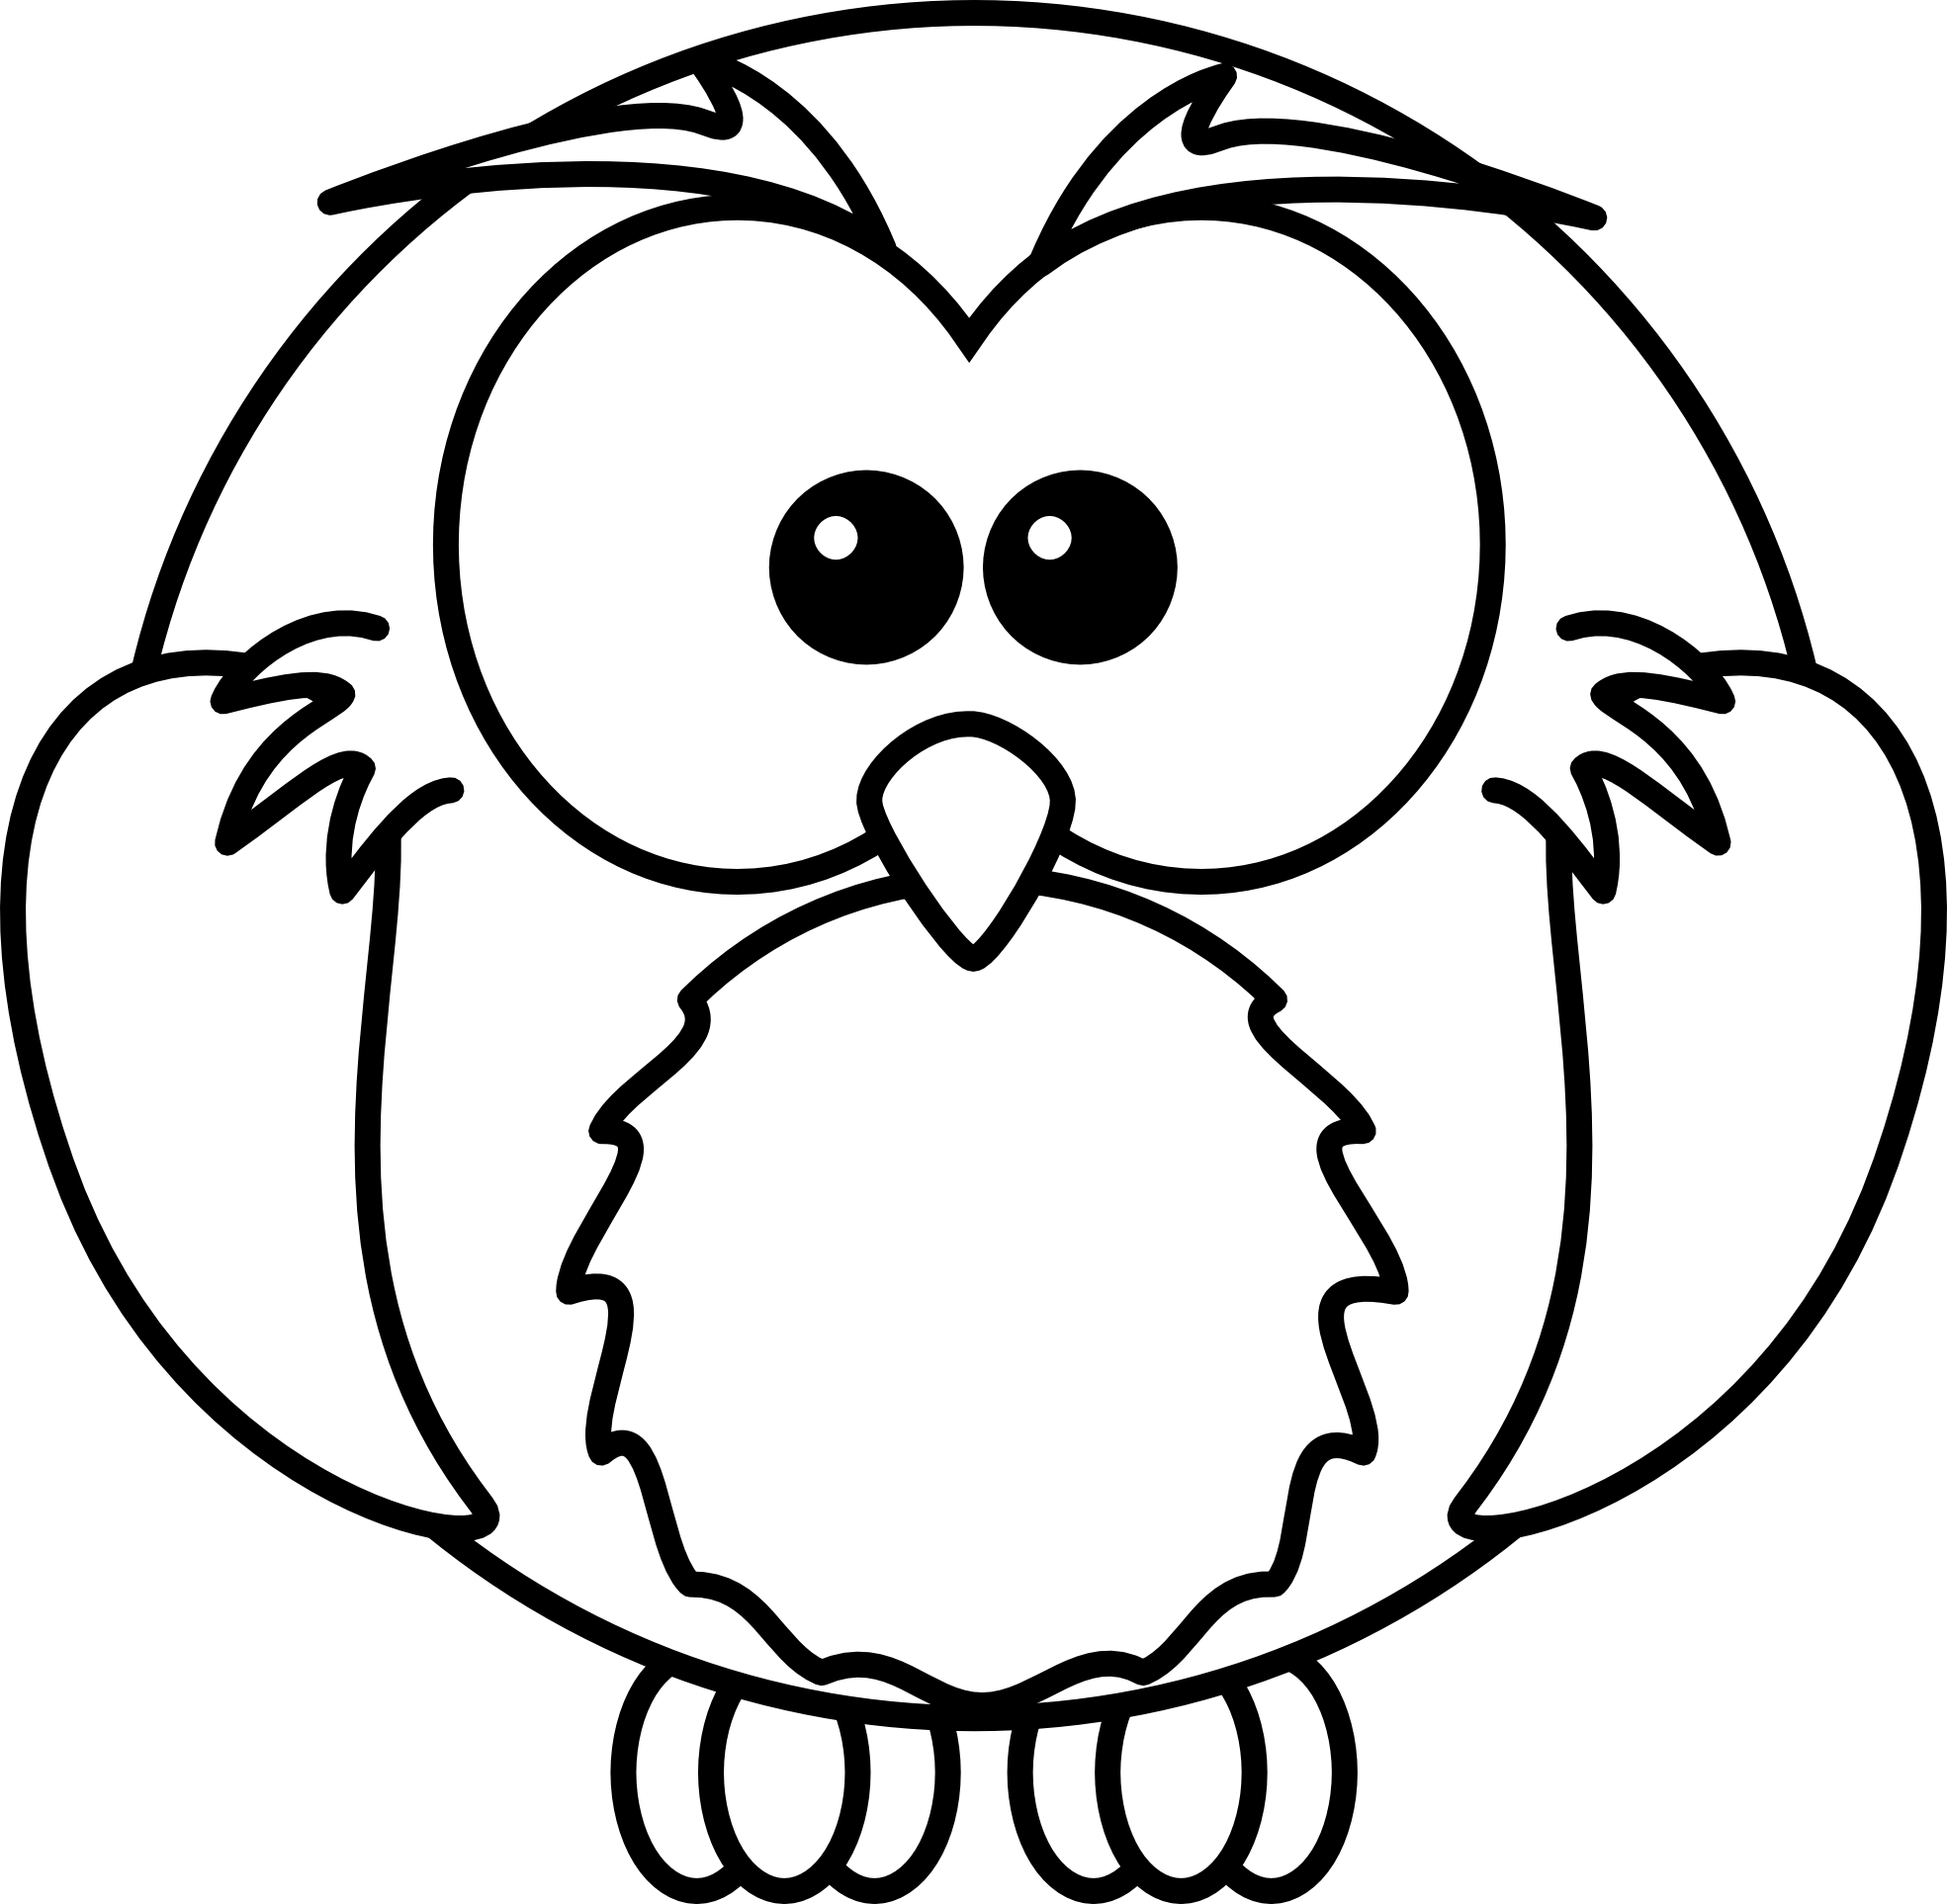 Baby Owl Clipart Black And White Cartoon-Baby Owl Clipart Black And White Cartoon Clip Art Black And White 1-1